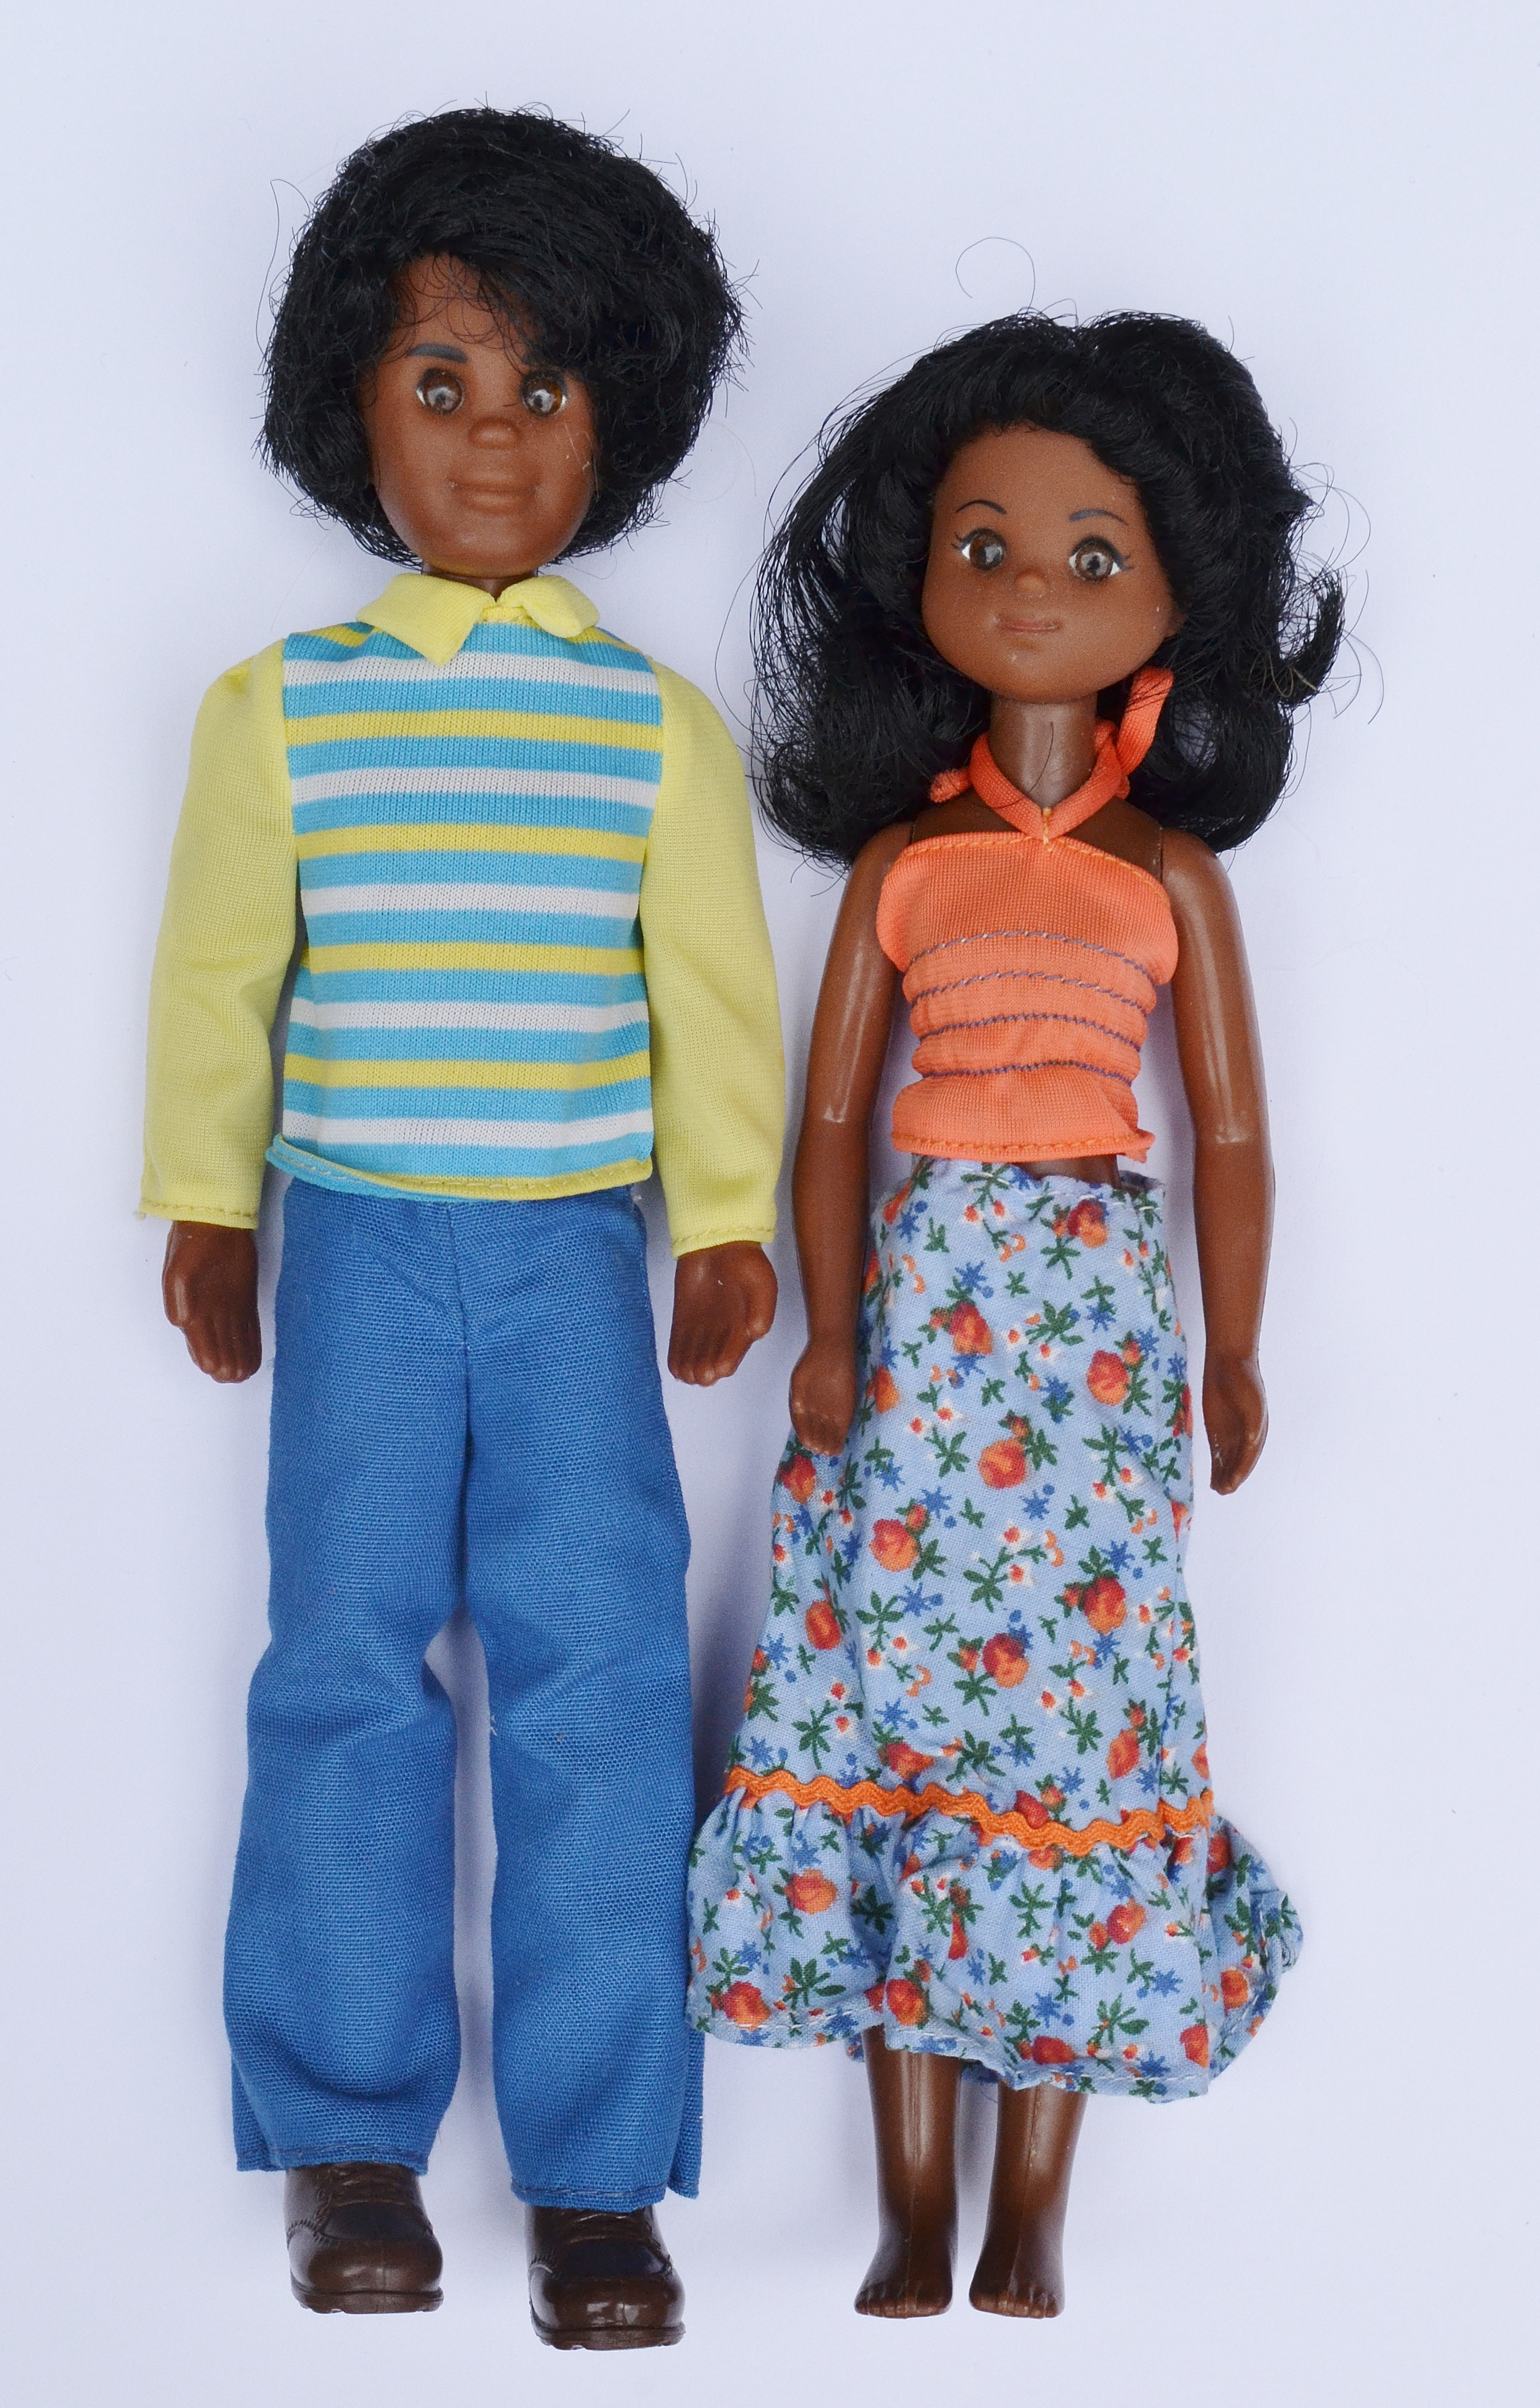 b1aeb677c Sunshine Family dolls mom and dad and baby 8